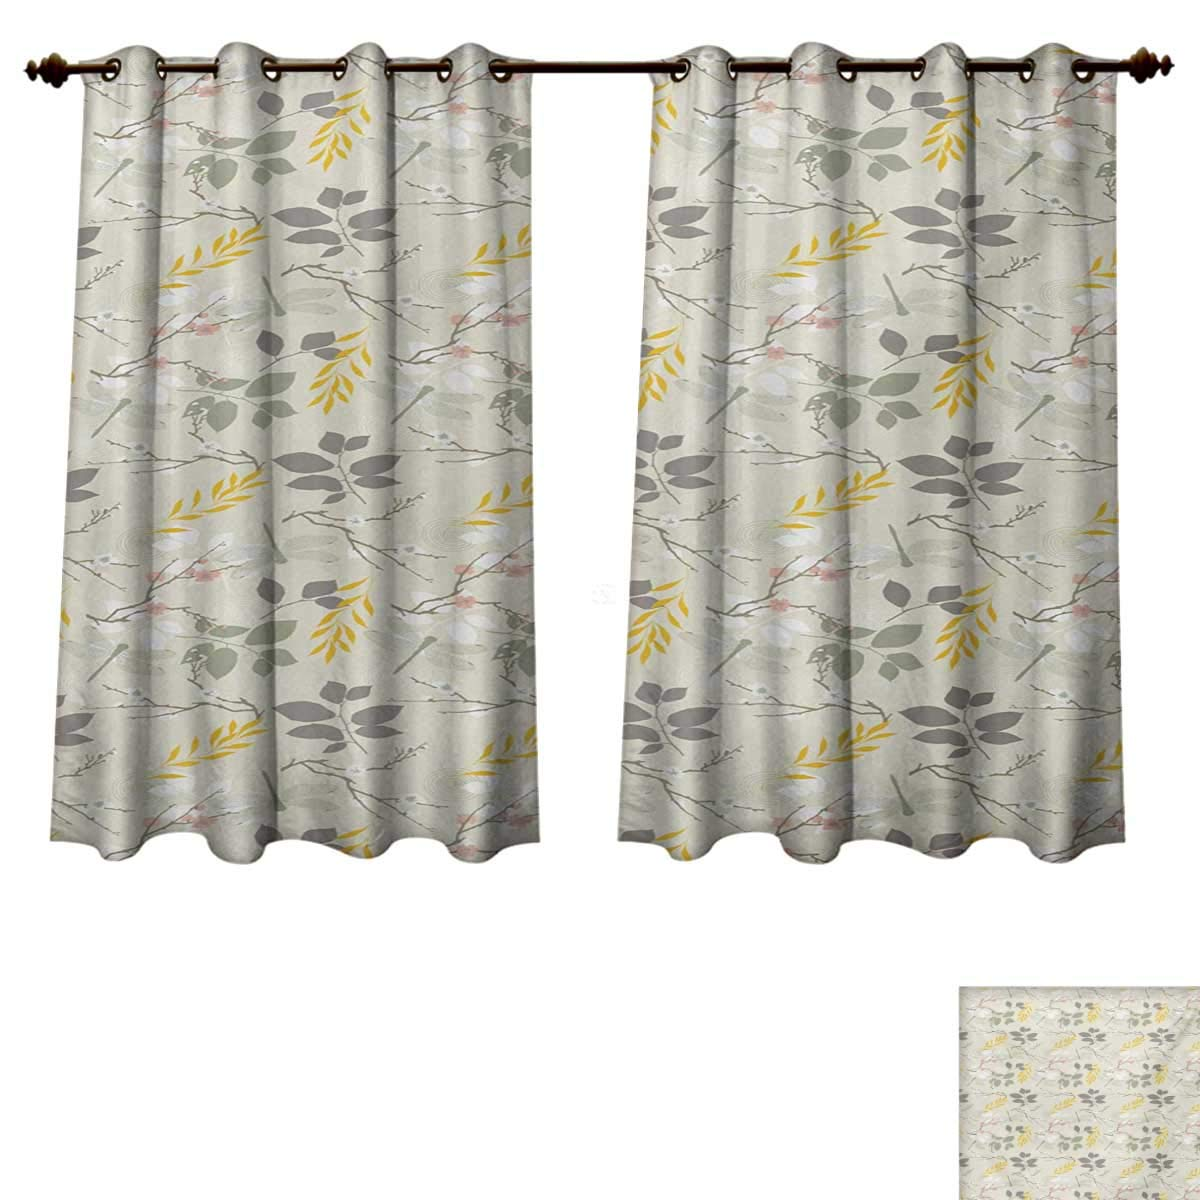 Rupperttextile Grey And Yellow Blackout Curtains Panels For Bedroom